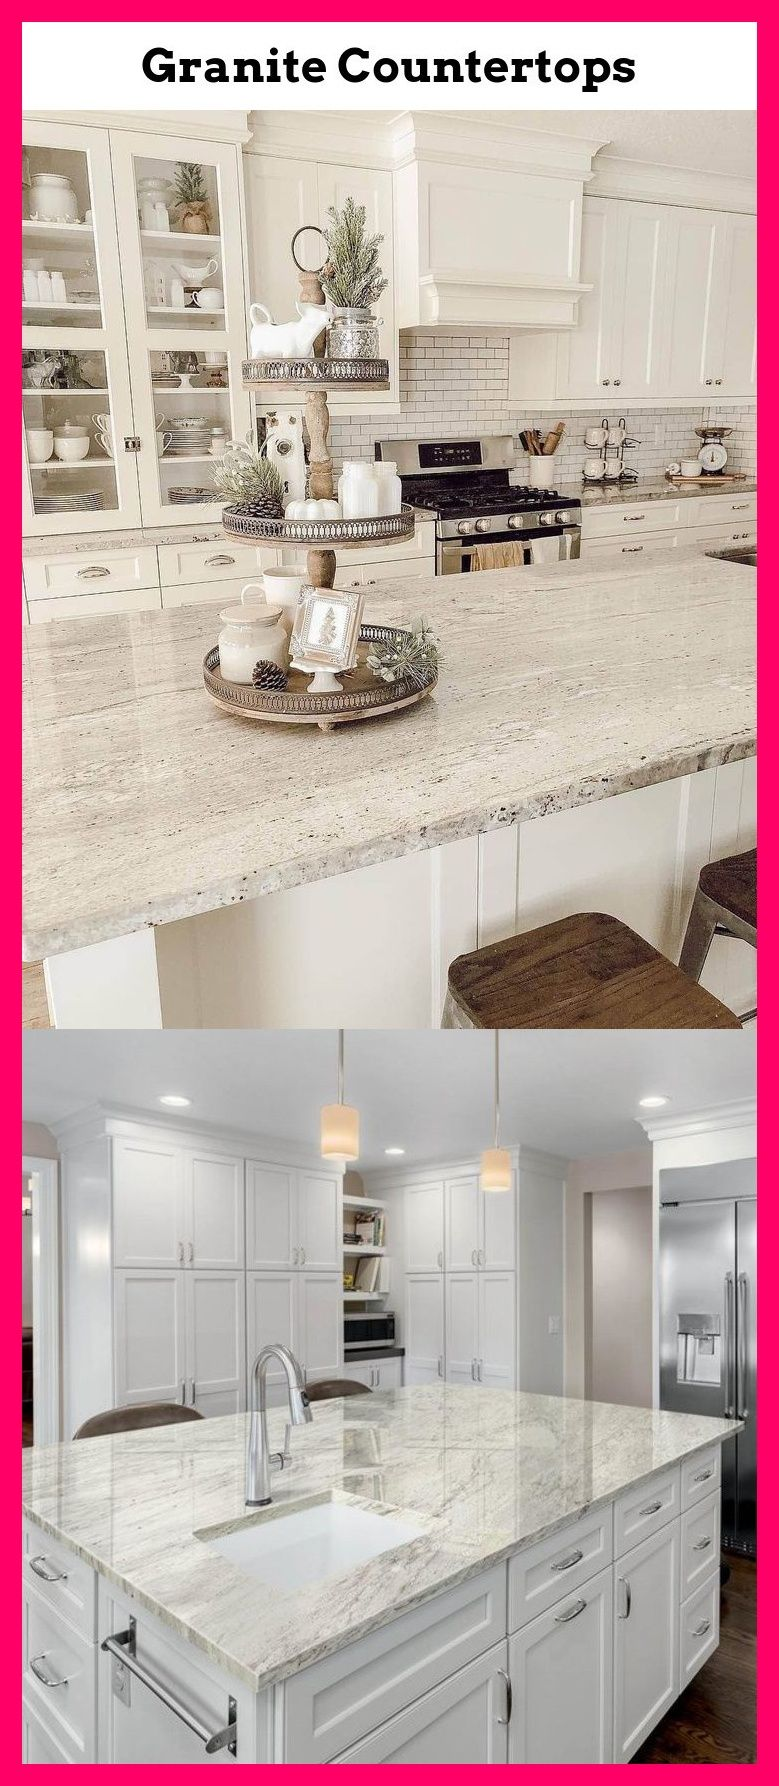 How To Care For Granite Countertops In The Kitchen in 2020